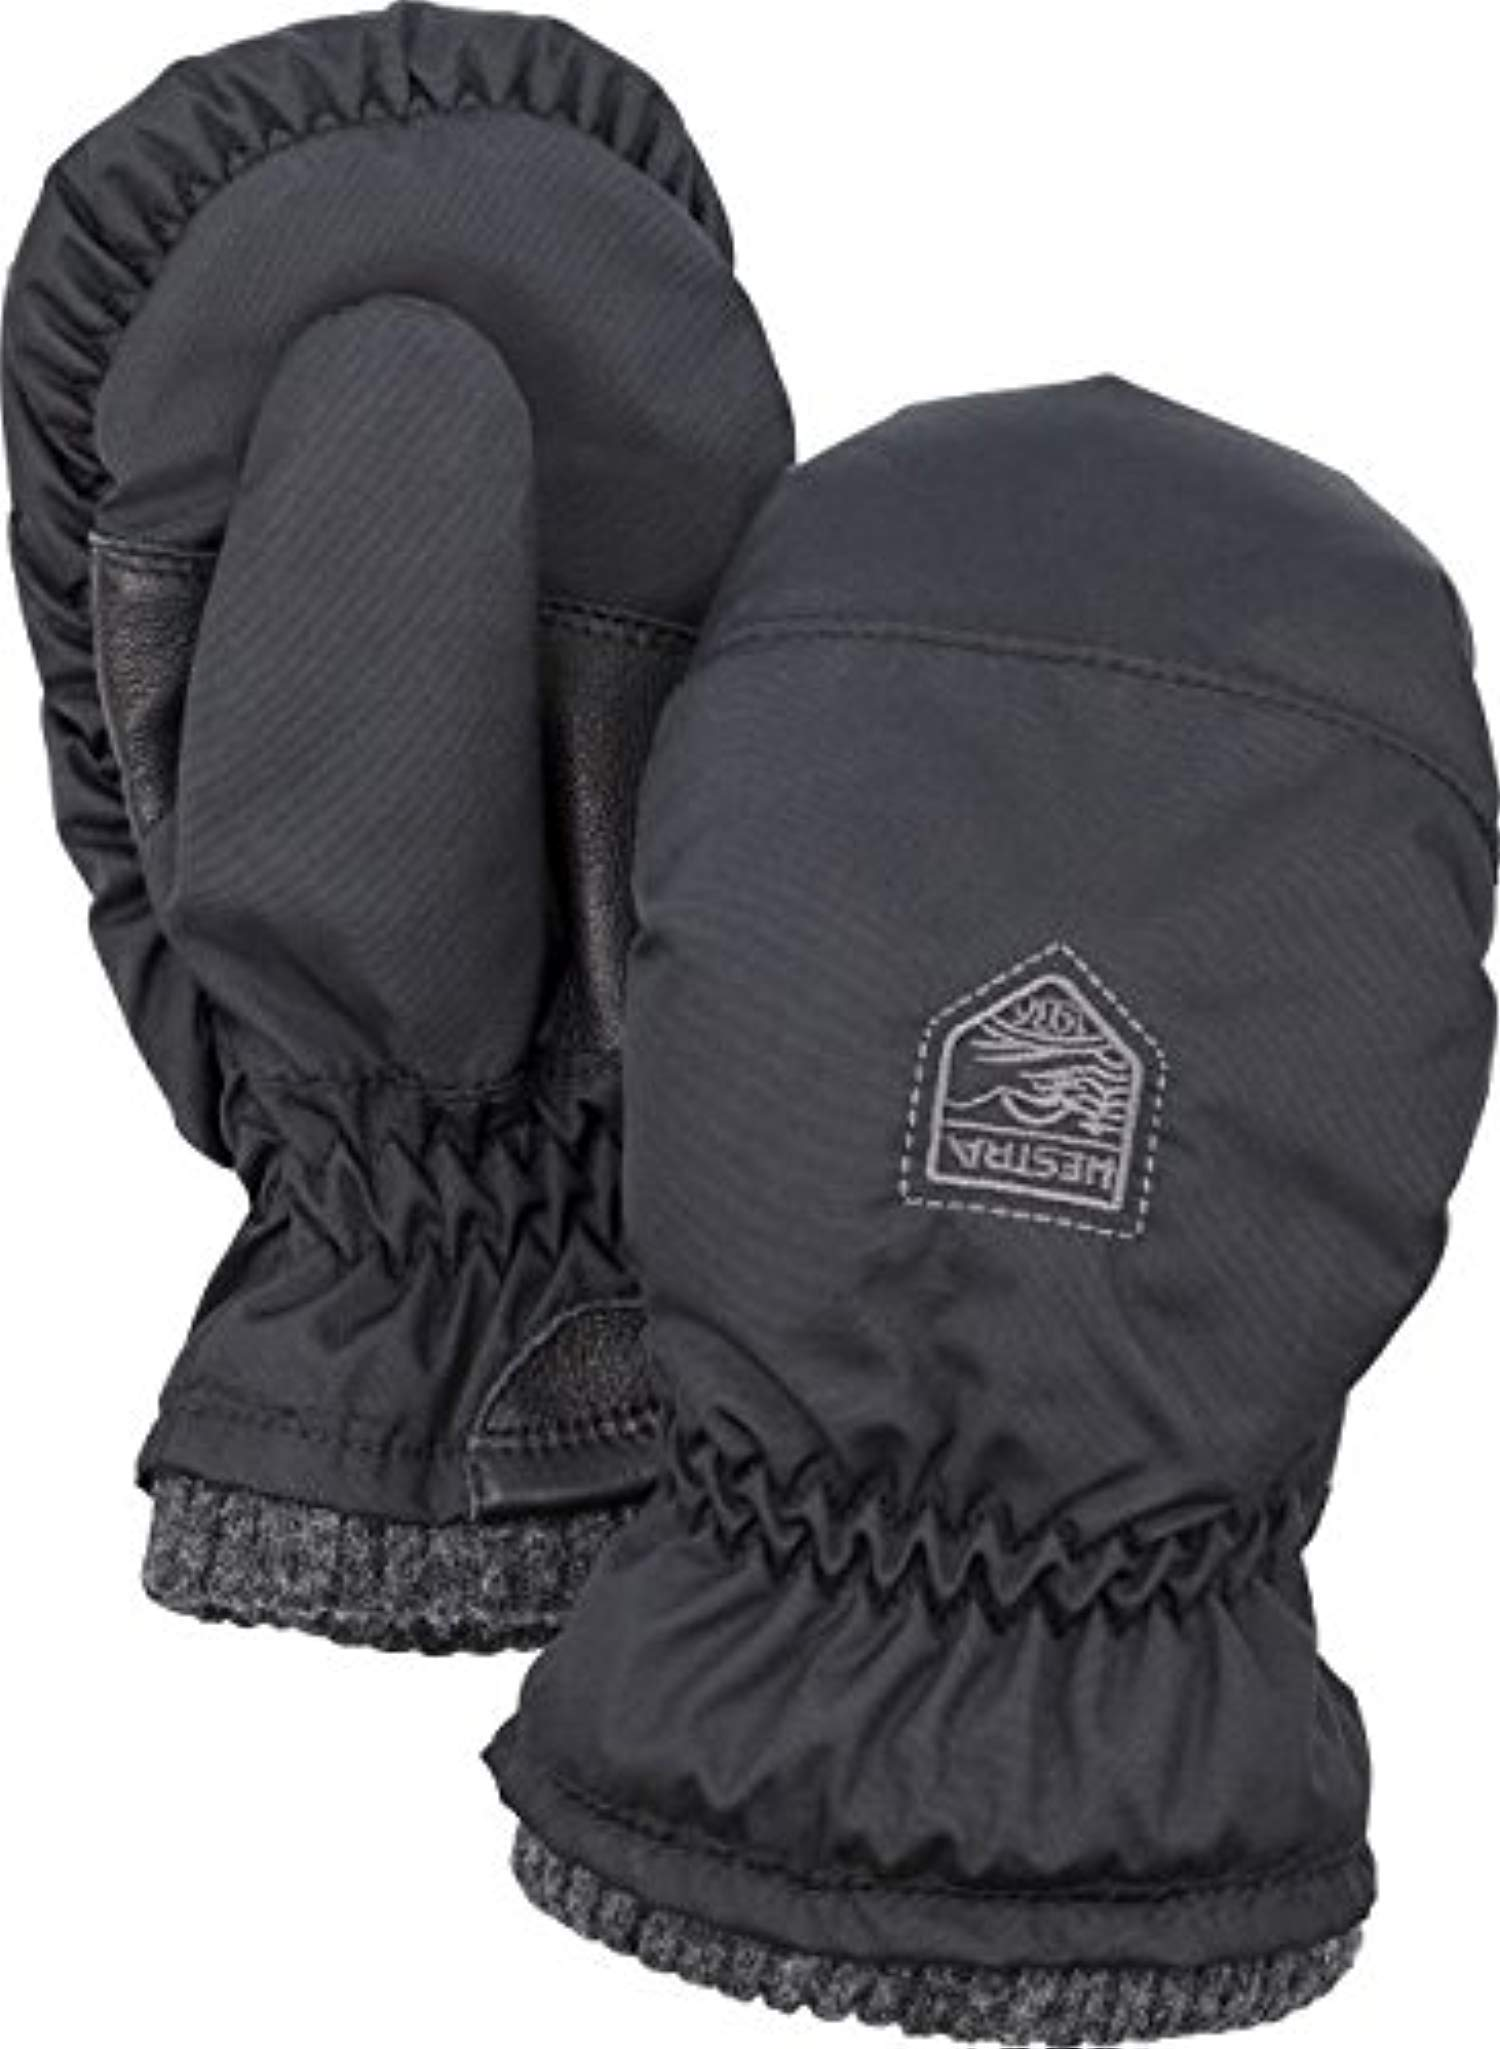 Hestra Youth My First Hestra - Mitts Black 1 & Knit Cap Bundle